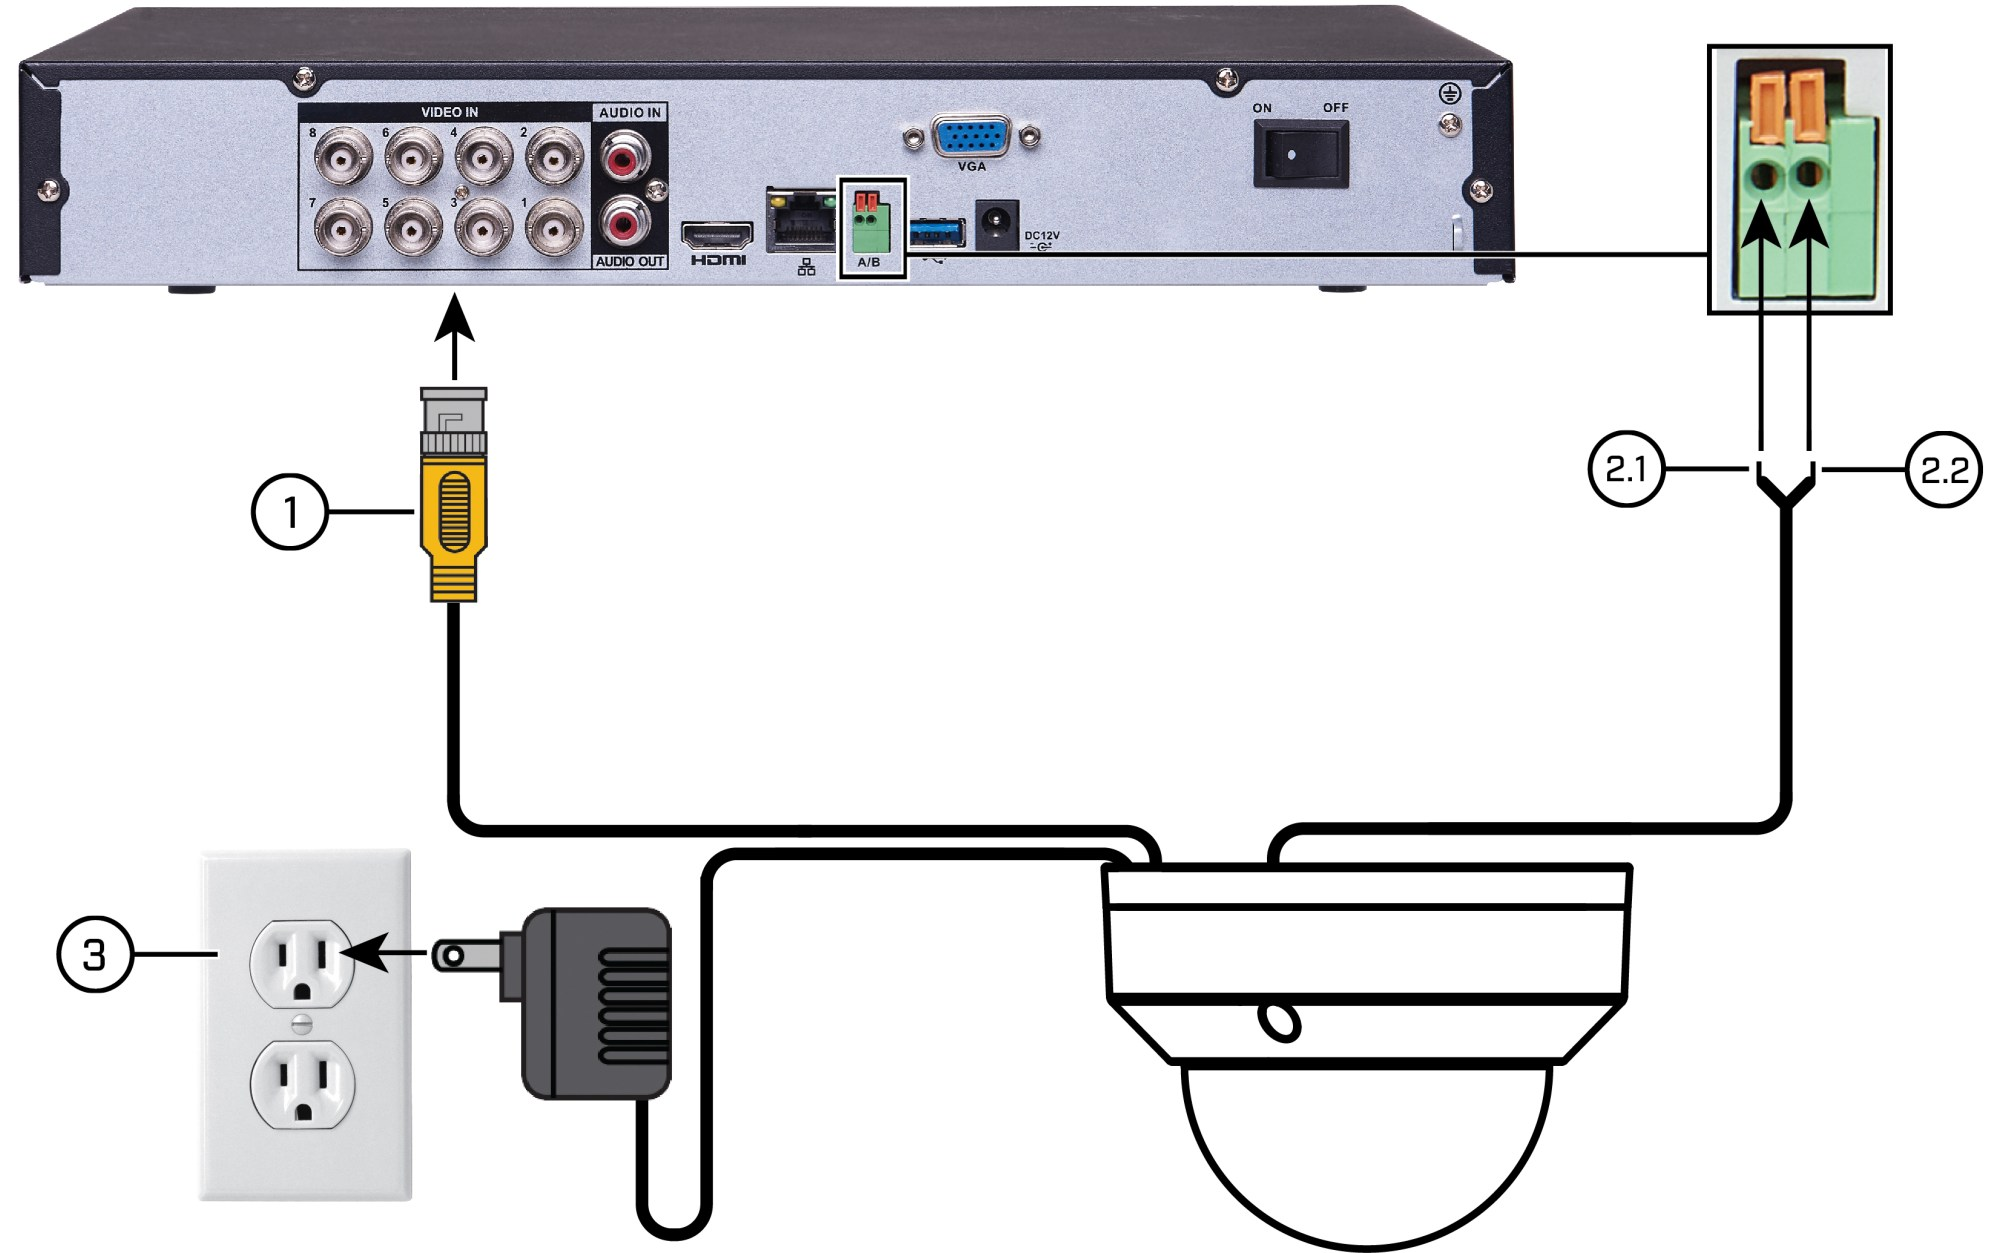 hight resolution of connect the bnc video cable to one of the video inputs on the dvr